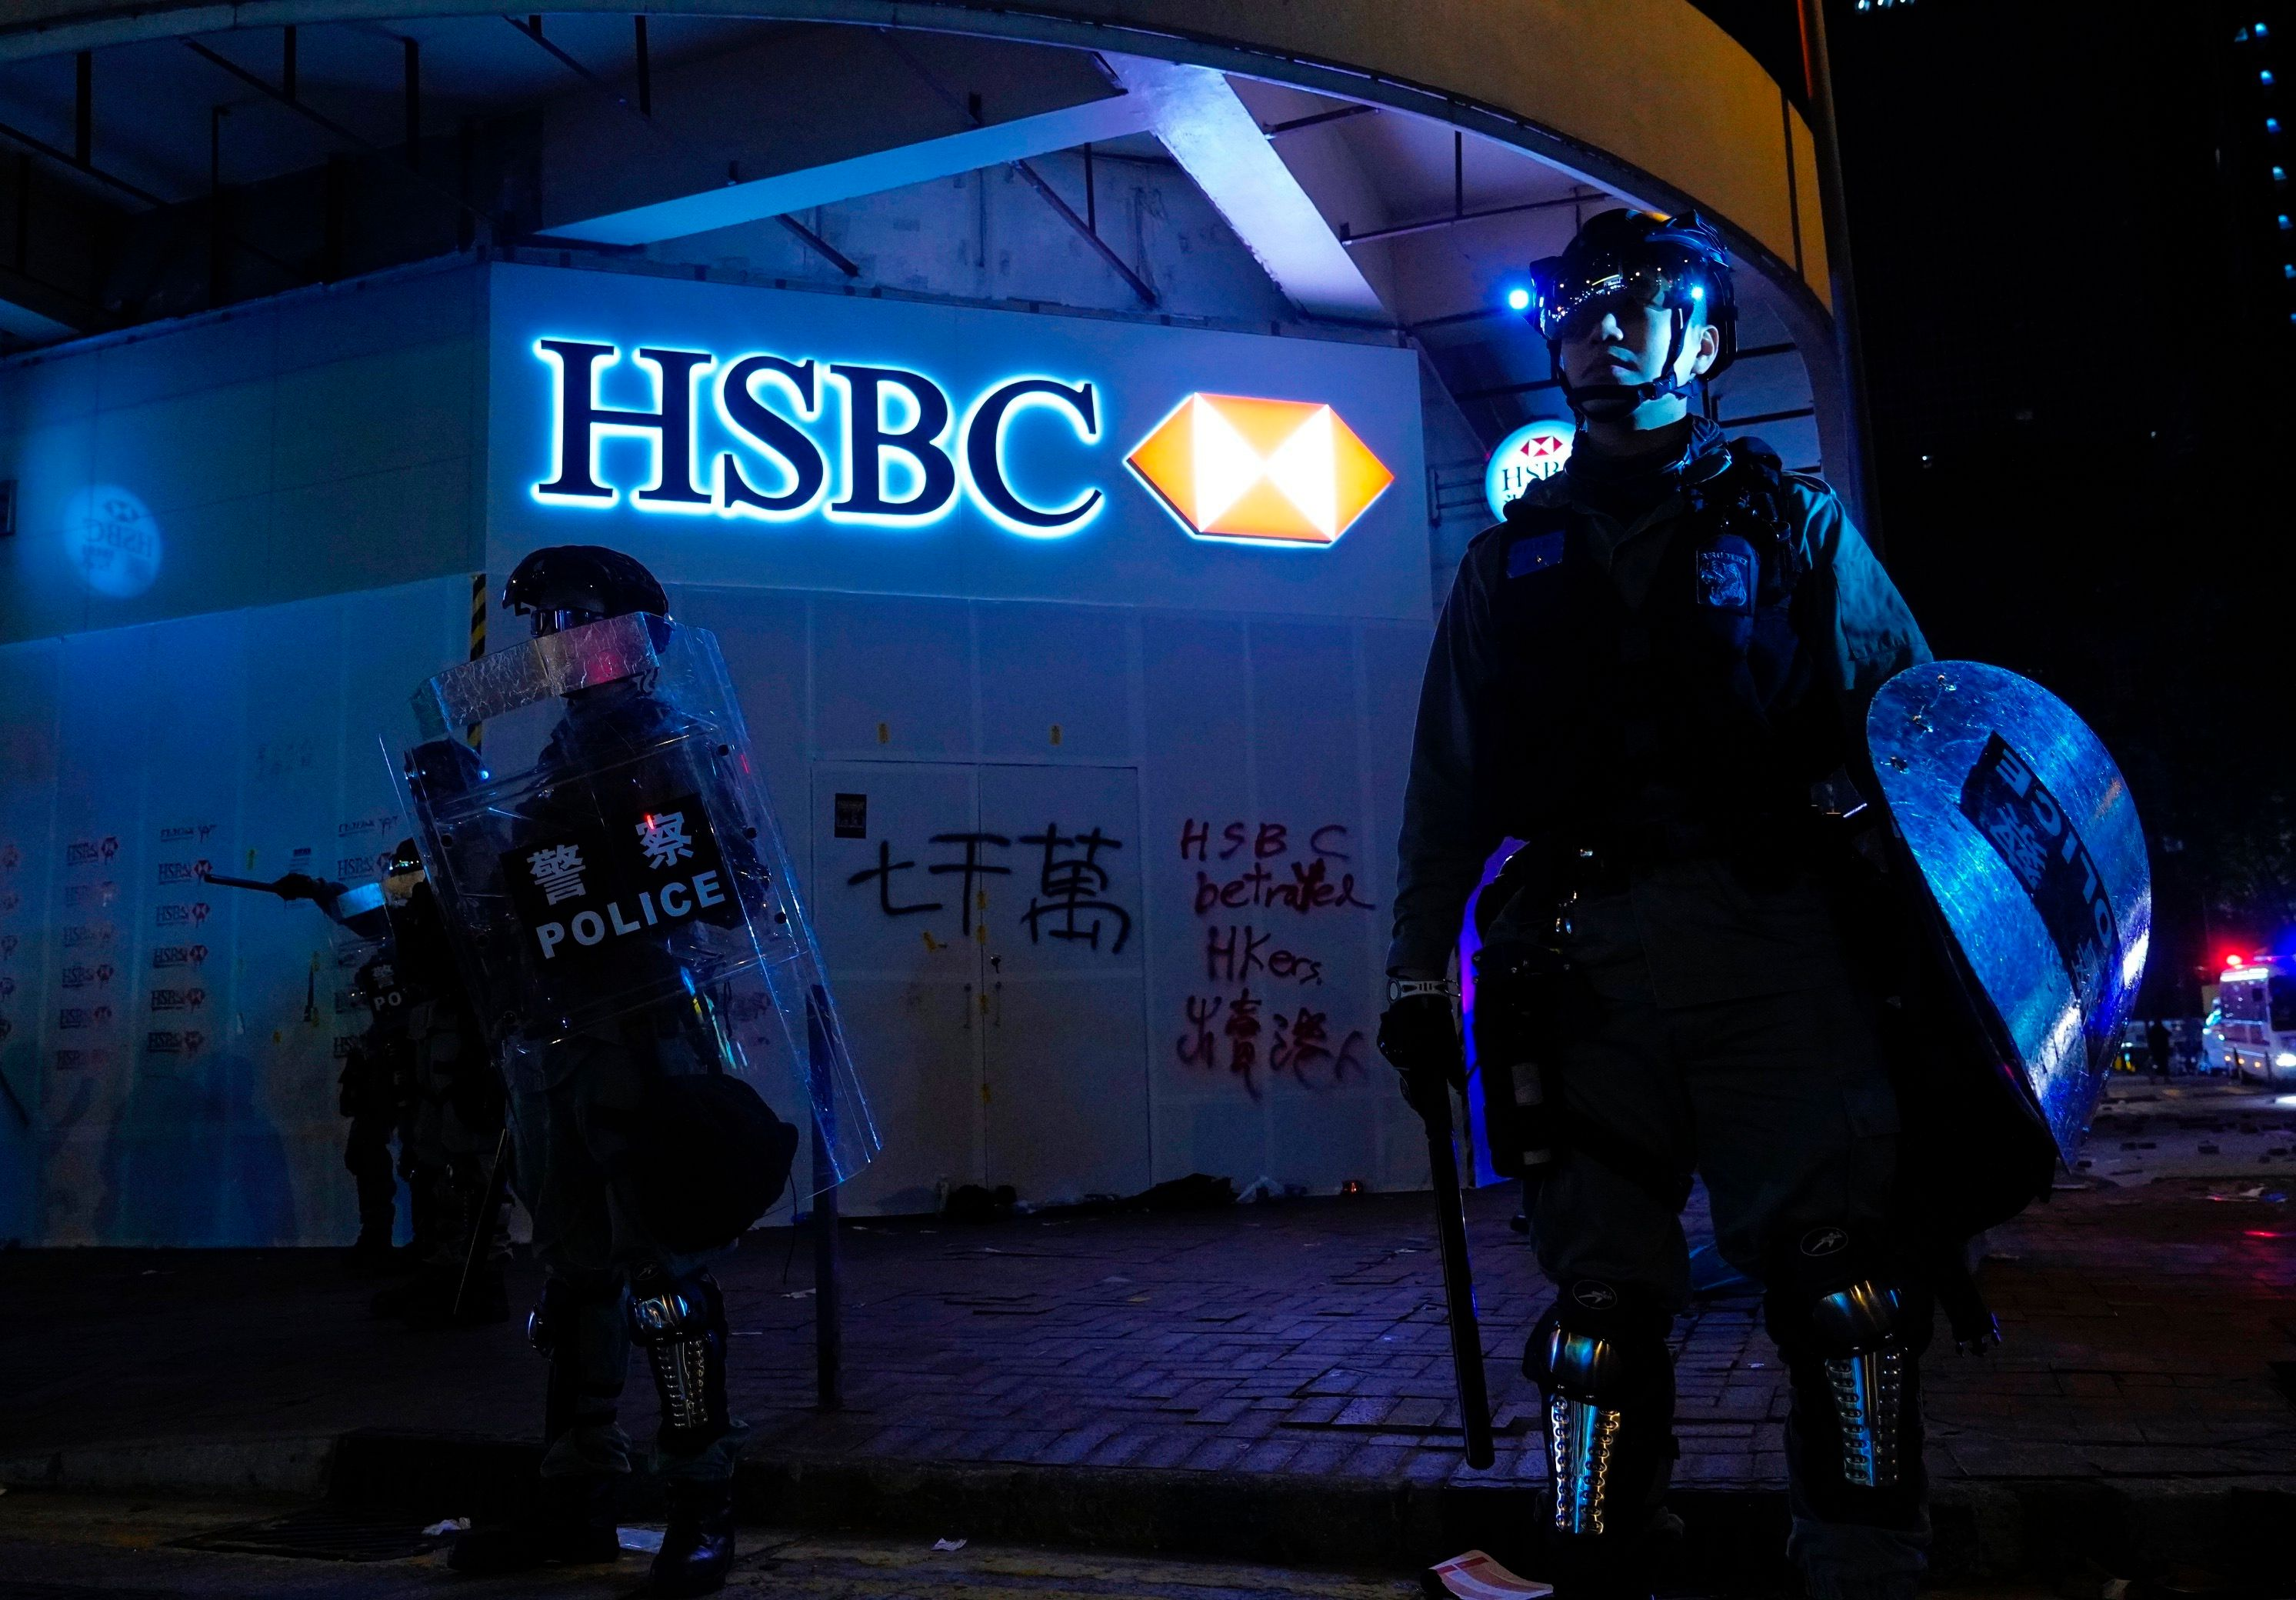 HSBC is China's perfect victim